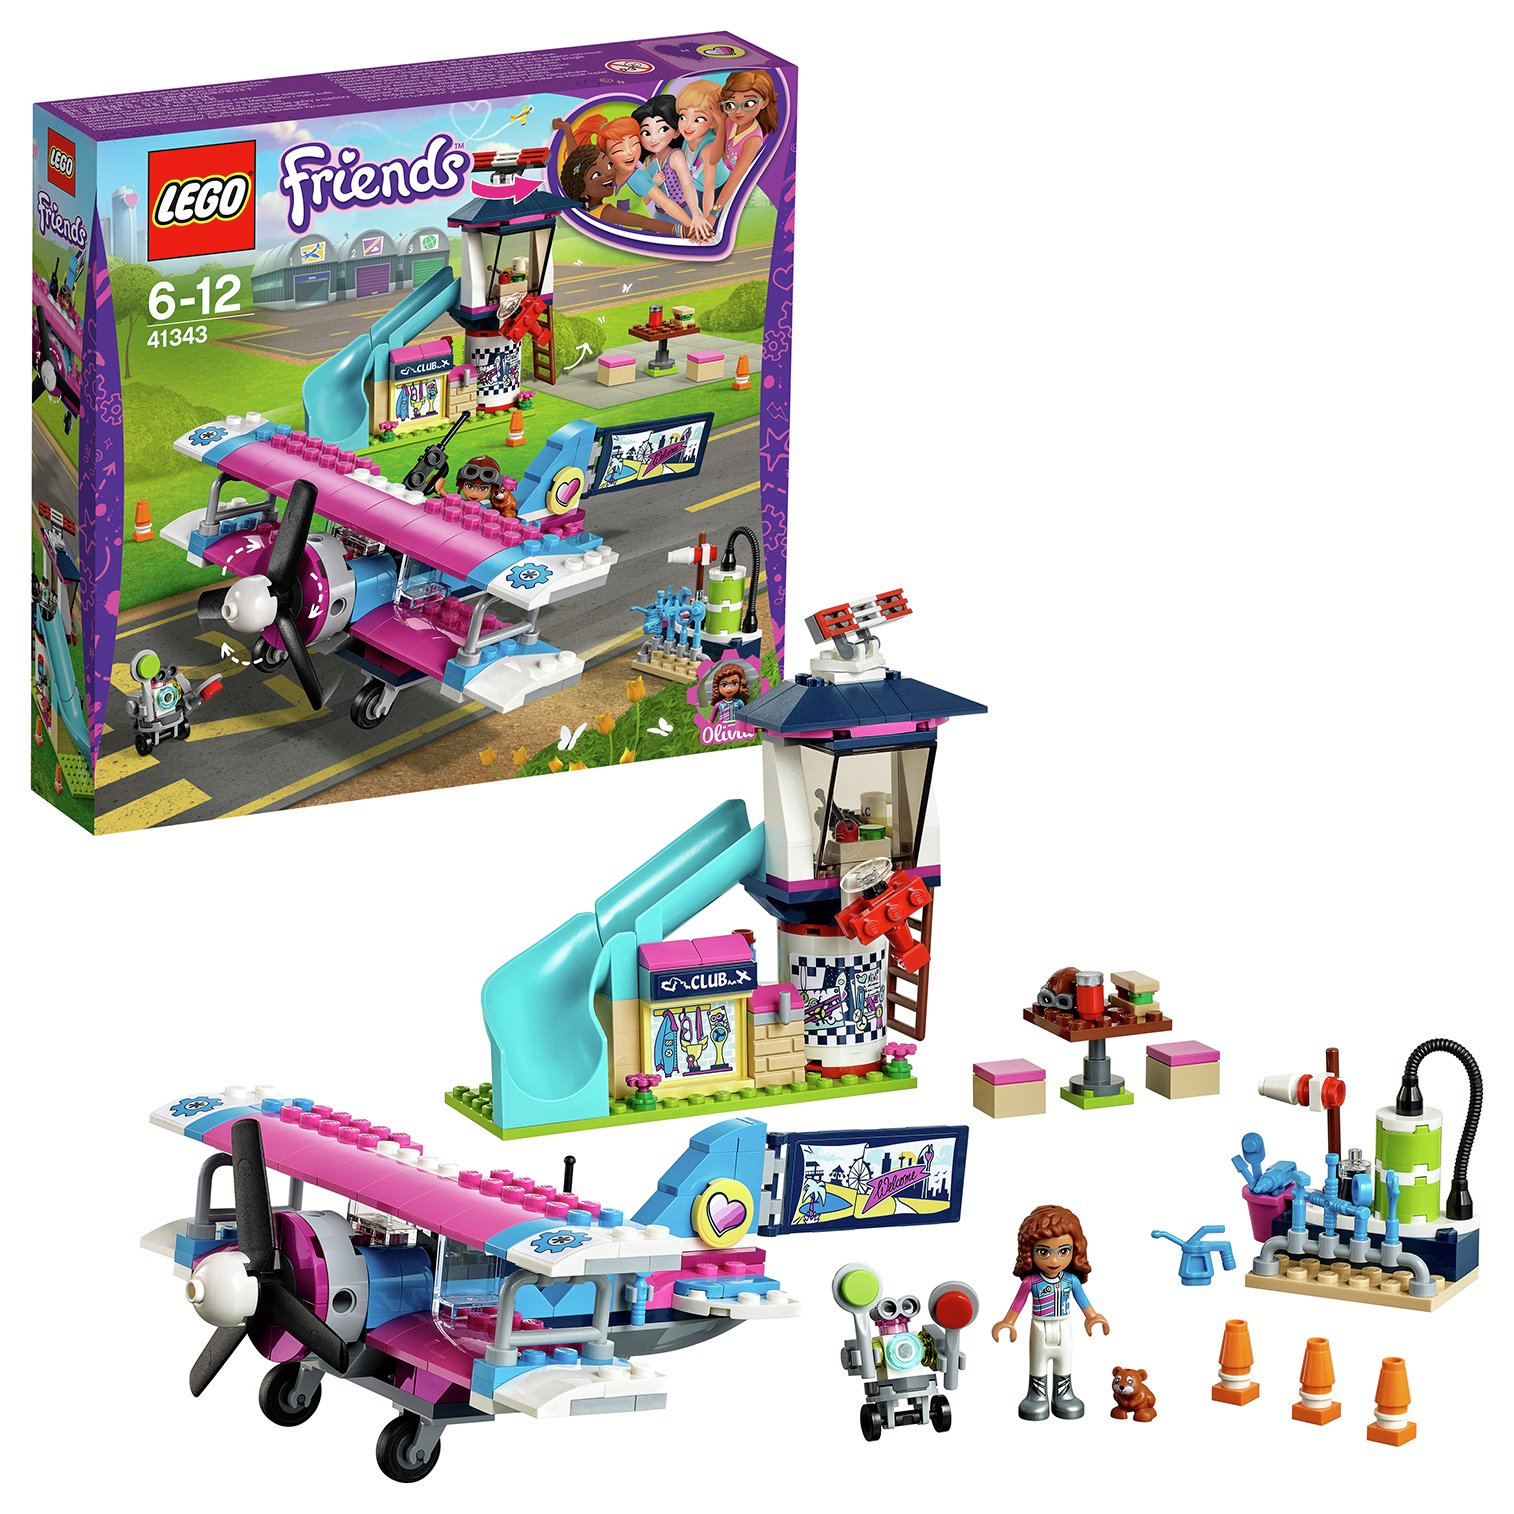 LEGO Friends Heartlake Airplane Tour review